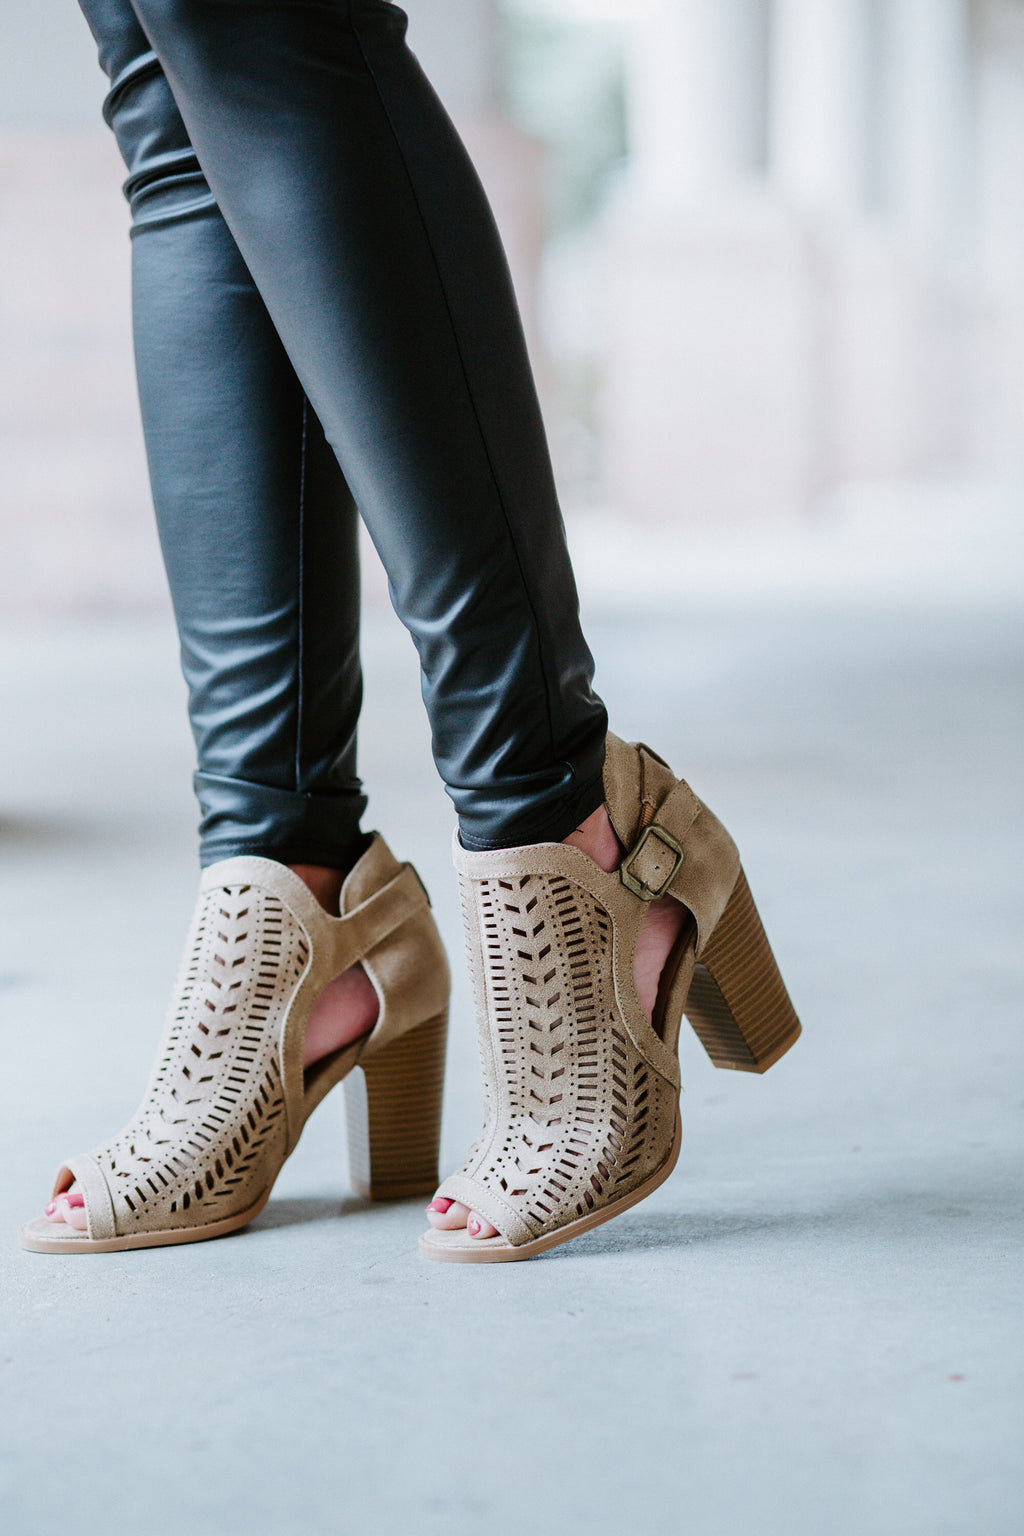 Double Take Booties - Marcella